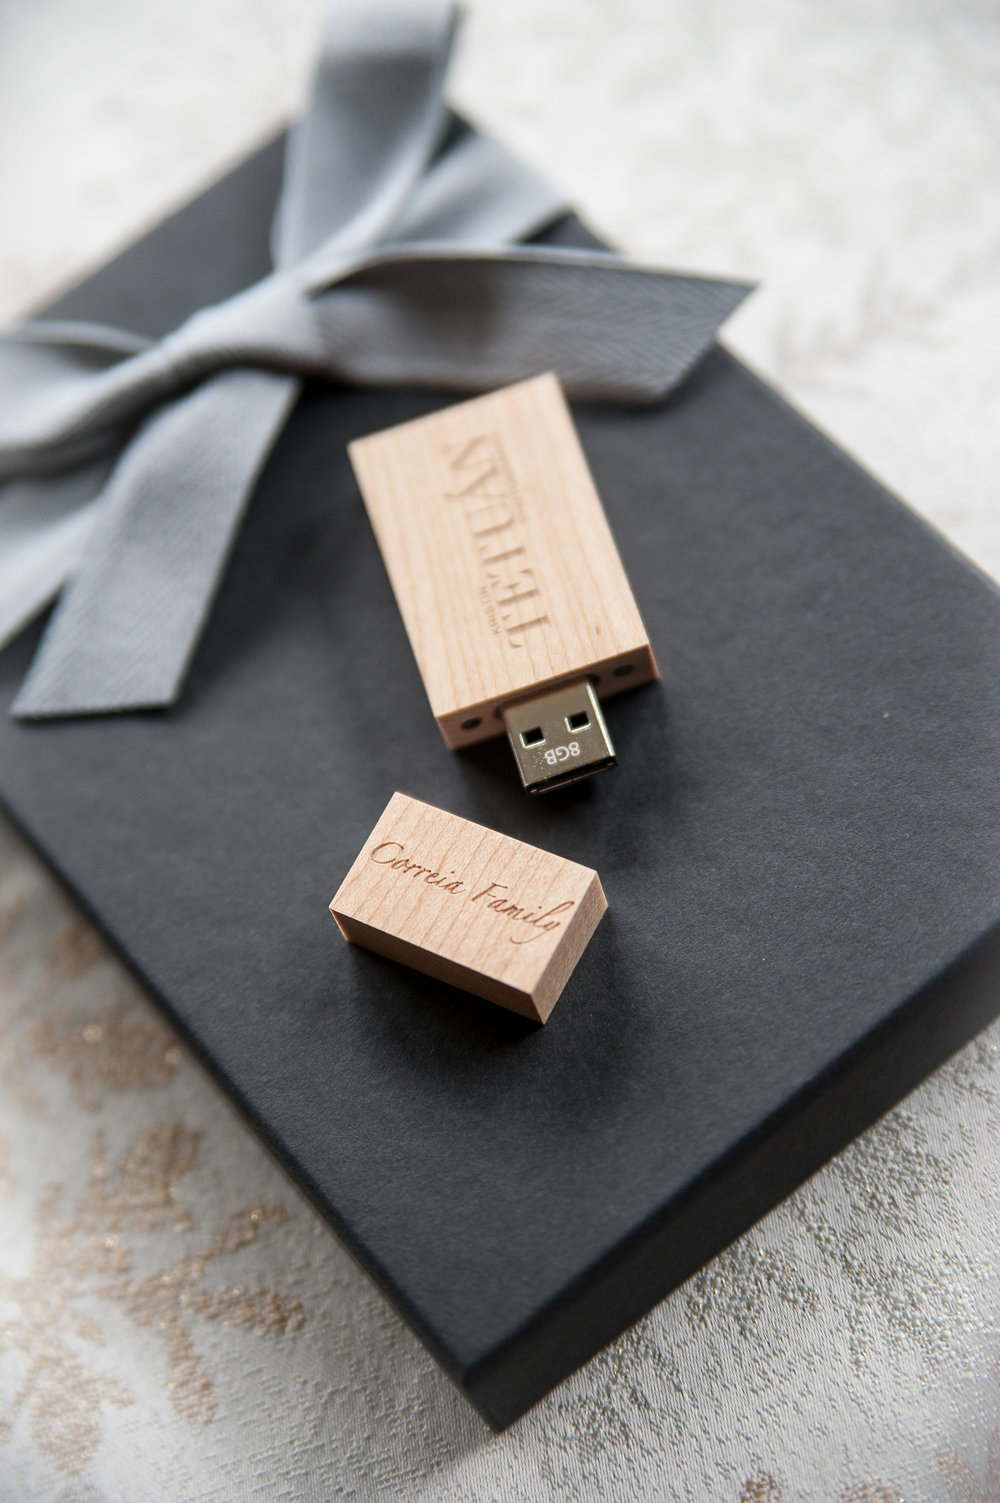 For an add'l $45, you may purchase an heirloom USB drive. -